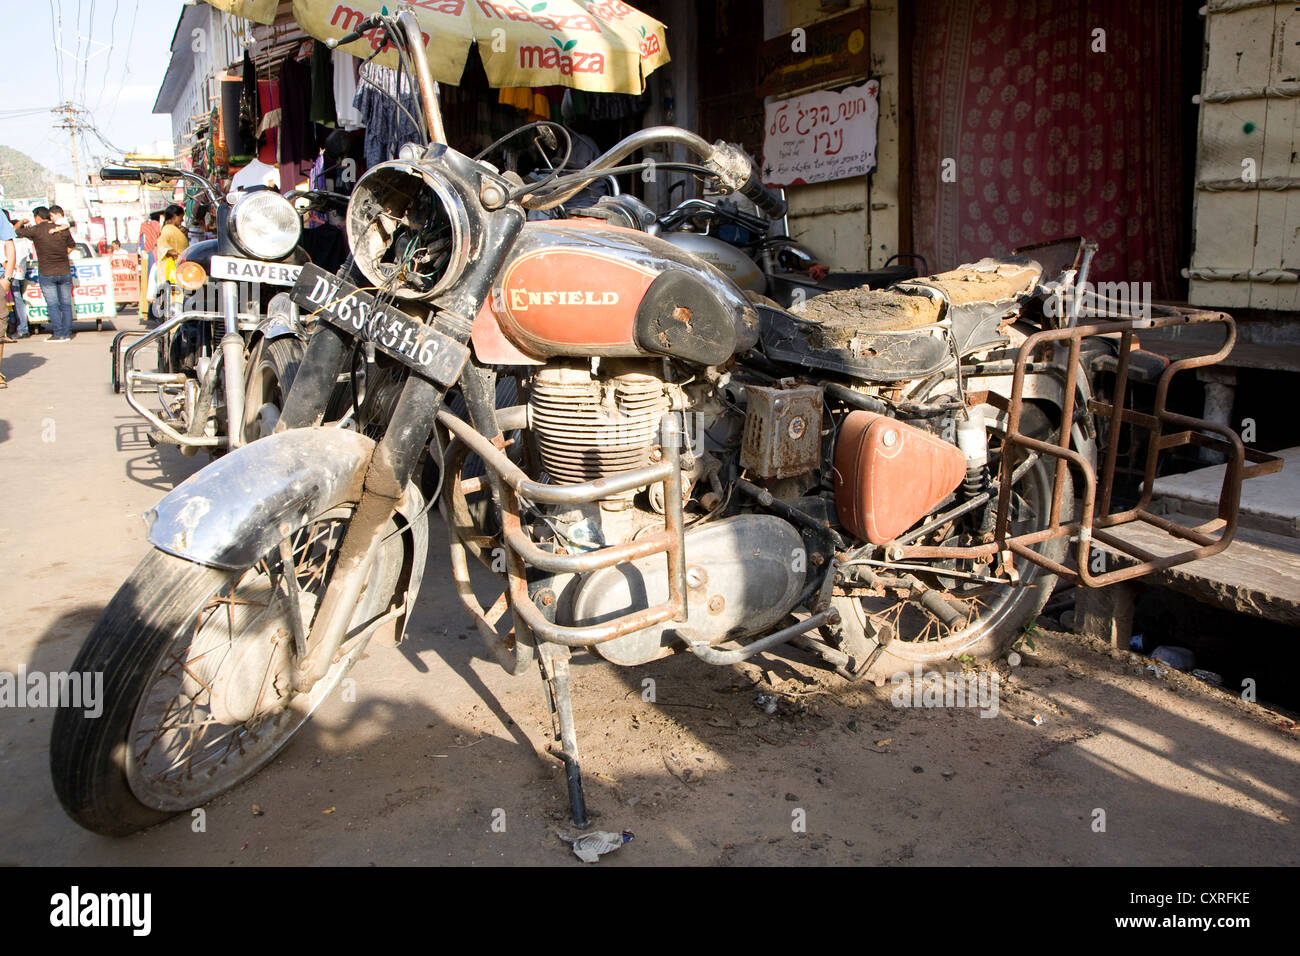 Royal Enfield Motorcycle In India Stock Photo 50918994 Alamy